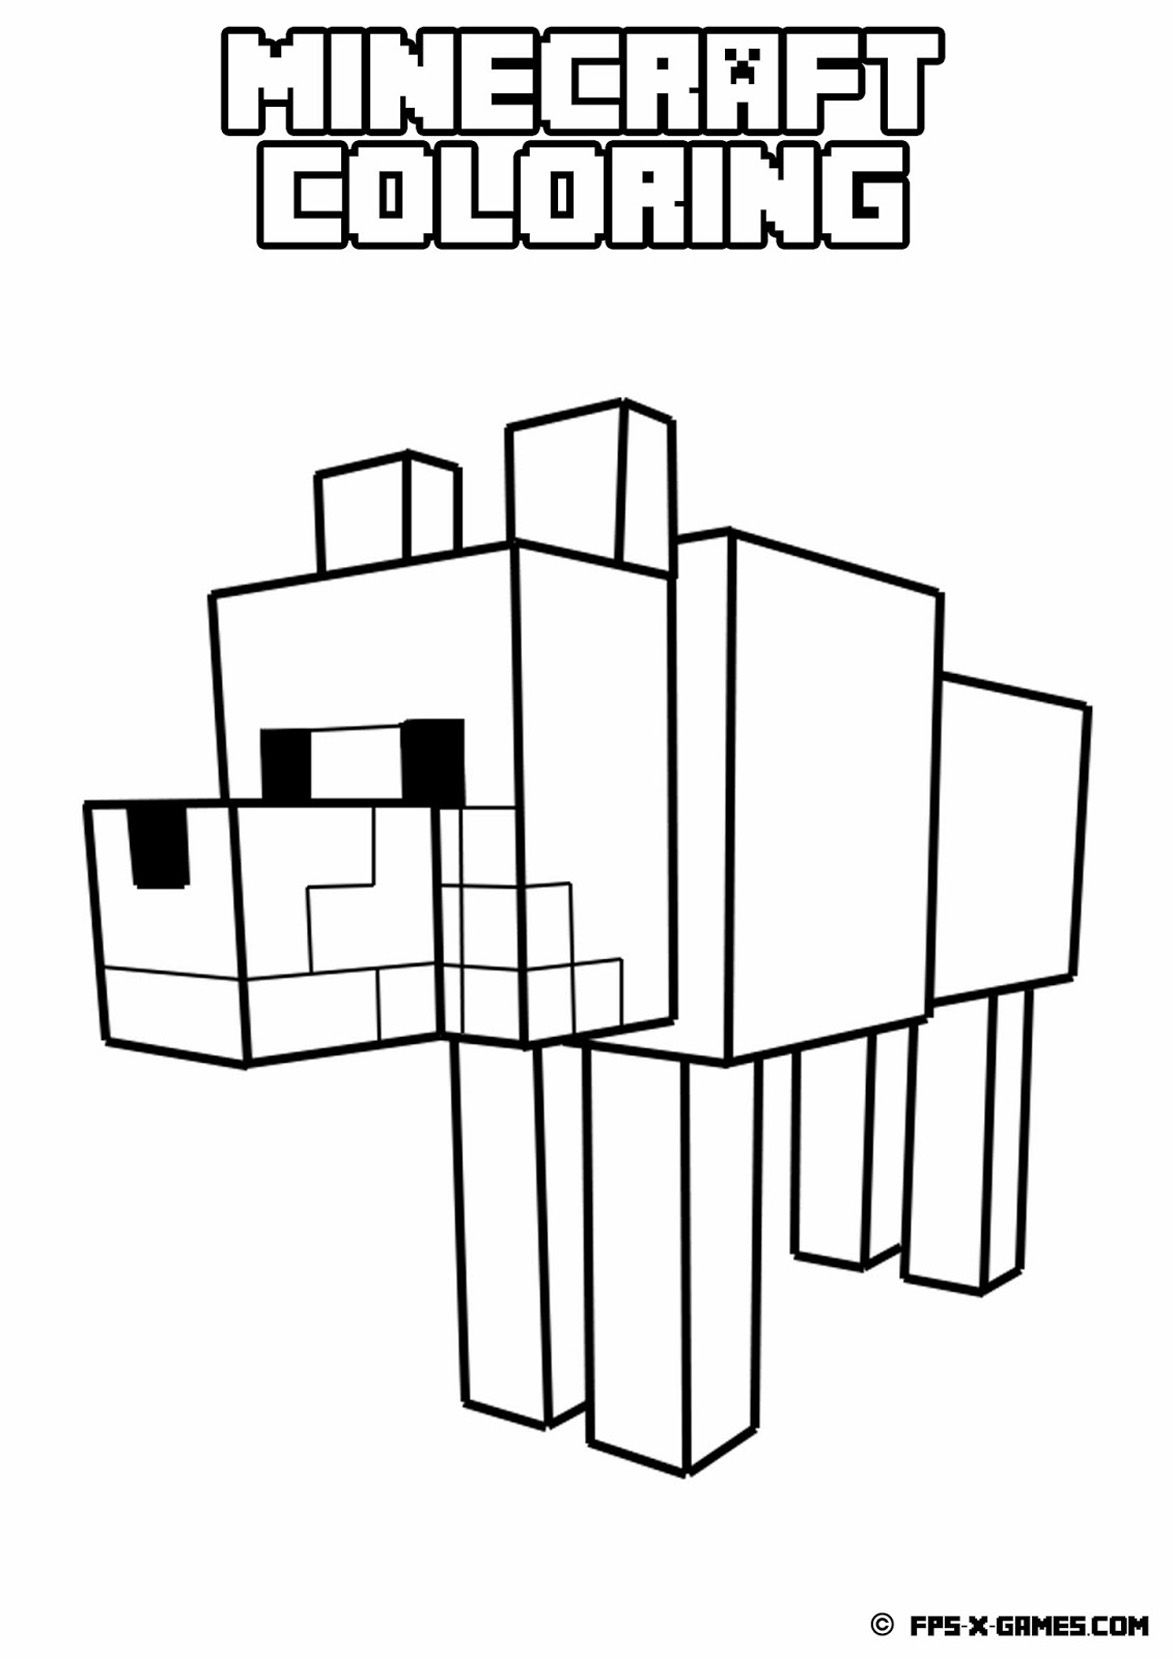 creeper coloring pages minecraft coloring pages for kids 6 coloring pages for creeper pages coloring